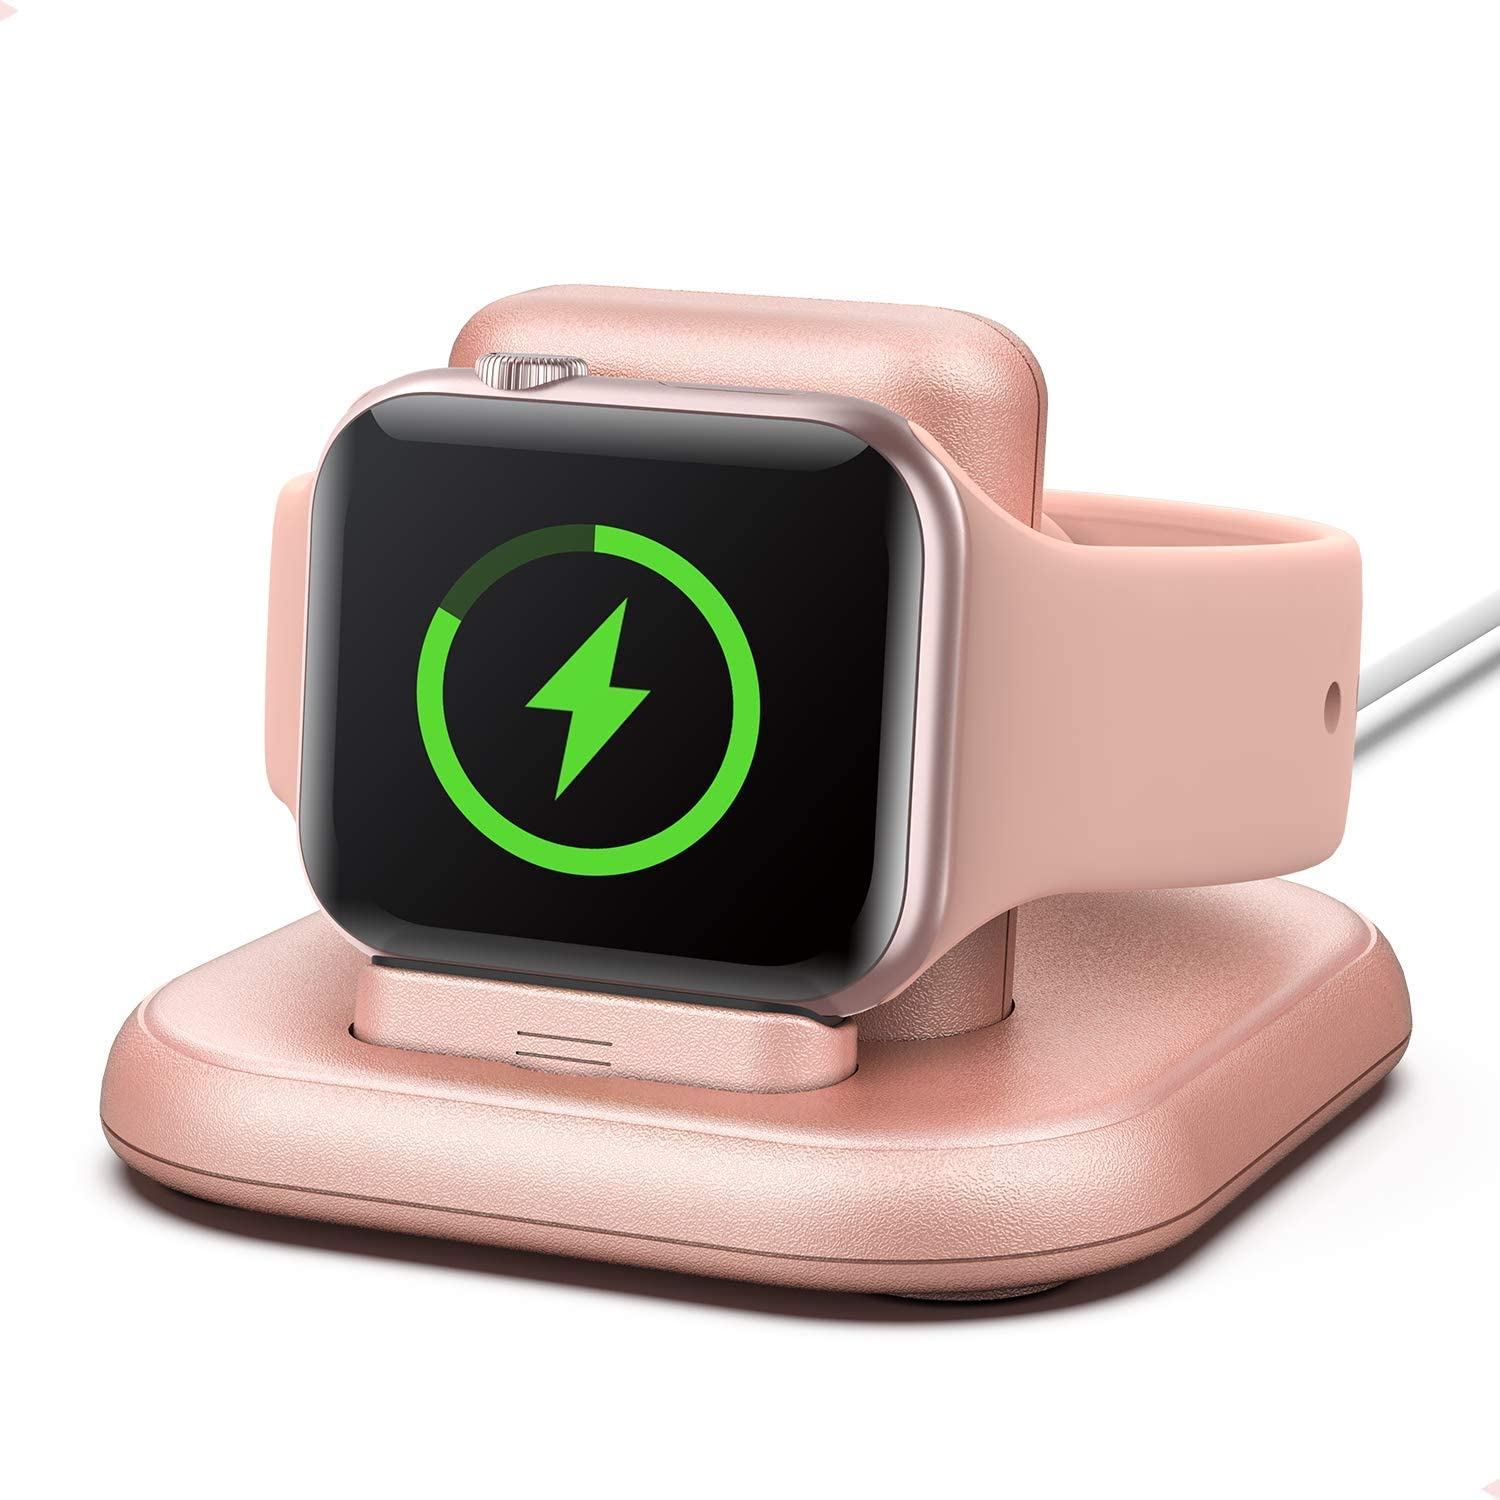 Conido Charging Stand for Apple Watch, Watch Charger Stand with Charging Cable, Magnetic Wireless Charging Station Compatible with Apple Watch SE Series 6/5/4/3/2/1/44mm/42mm/40mm/38mm- Rose Gold